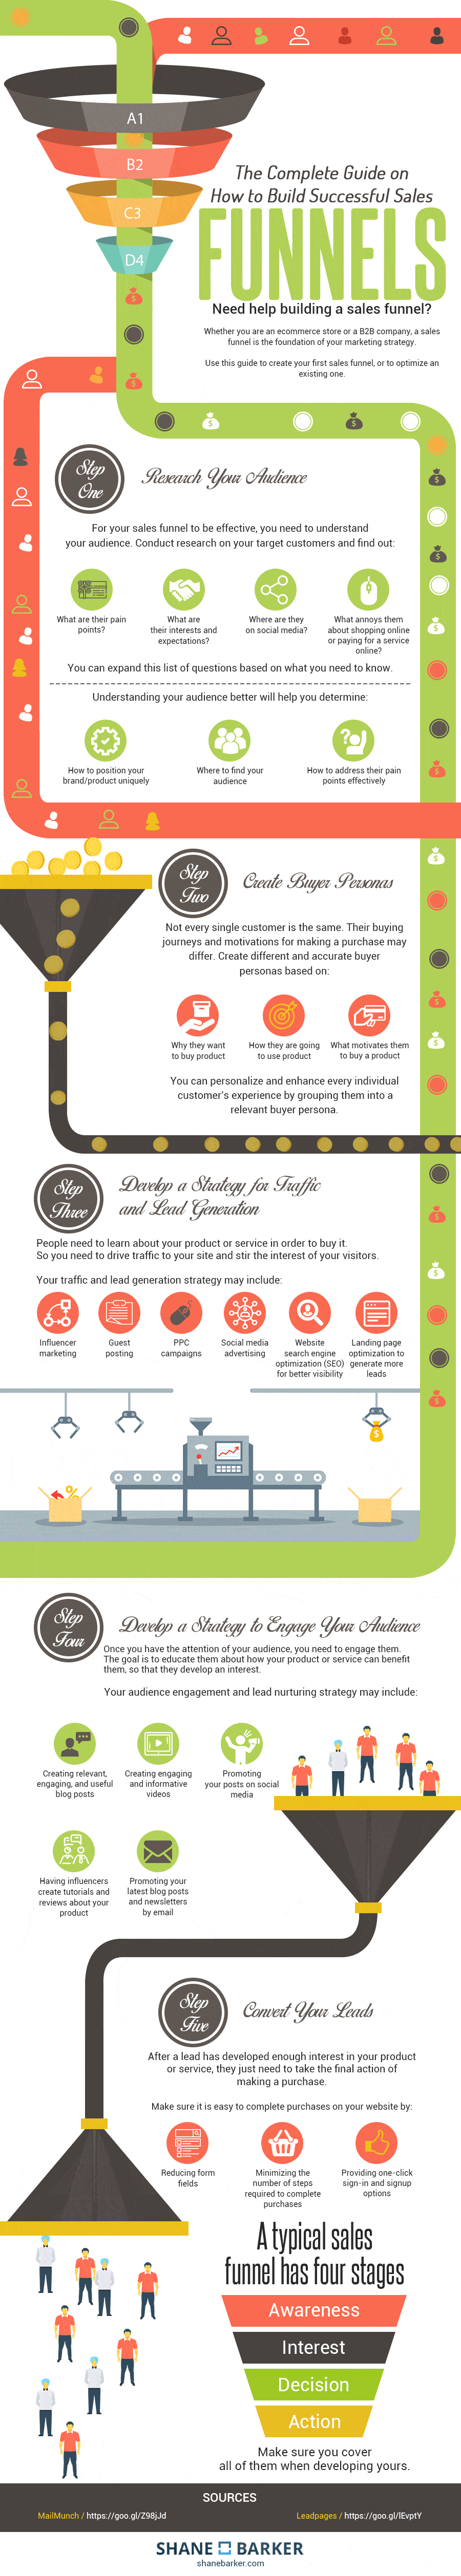 How to Build a Successful Sales Funnel Infographic